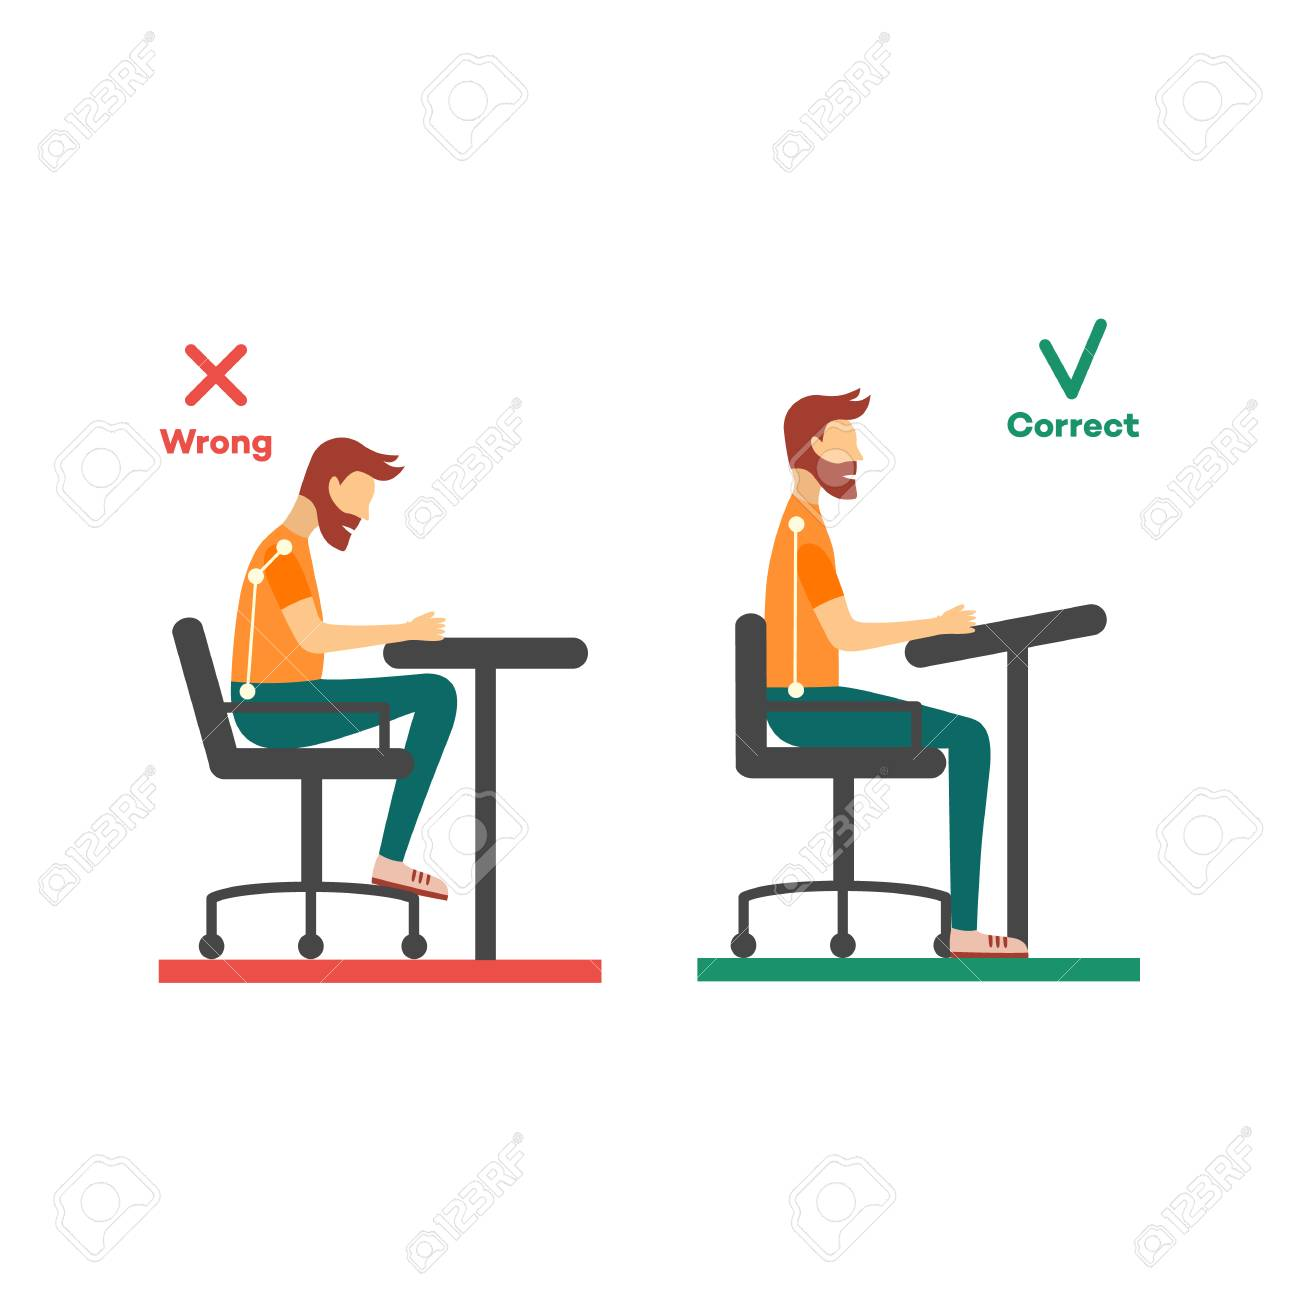 Correct, incorrect neck, spine alignment of young cartoon man character sitting at desk. Head bending positions, inclination of neck. Spine care concept. Vector isolated illustration - 114935901